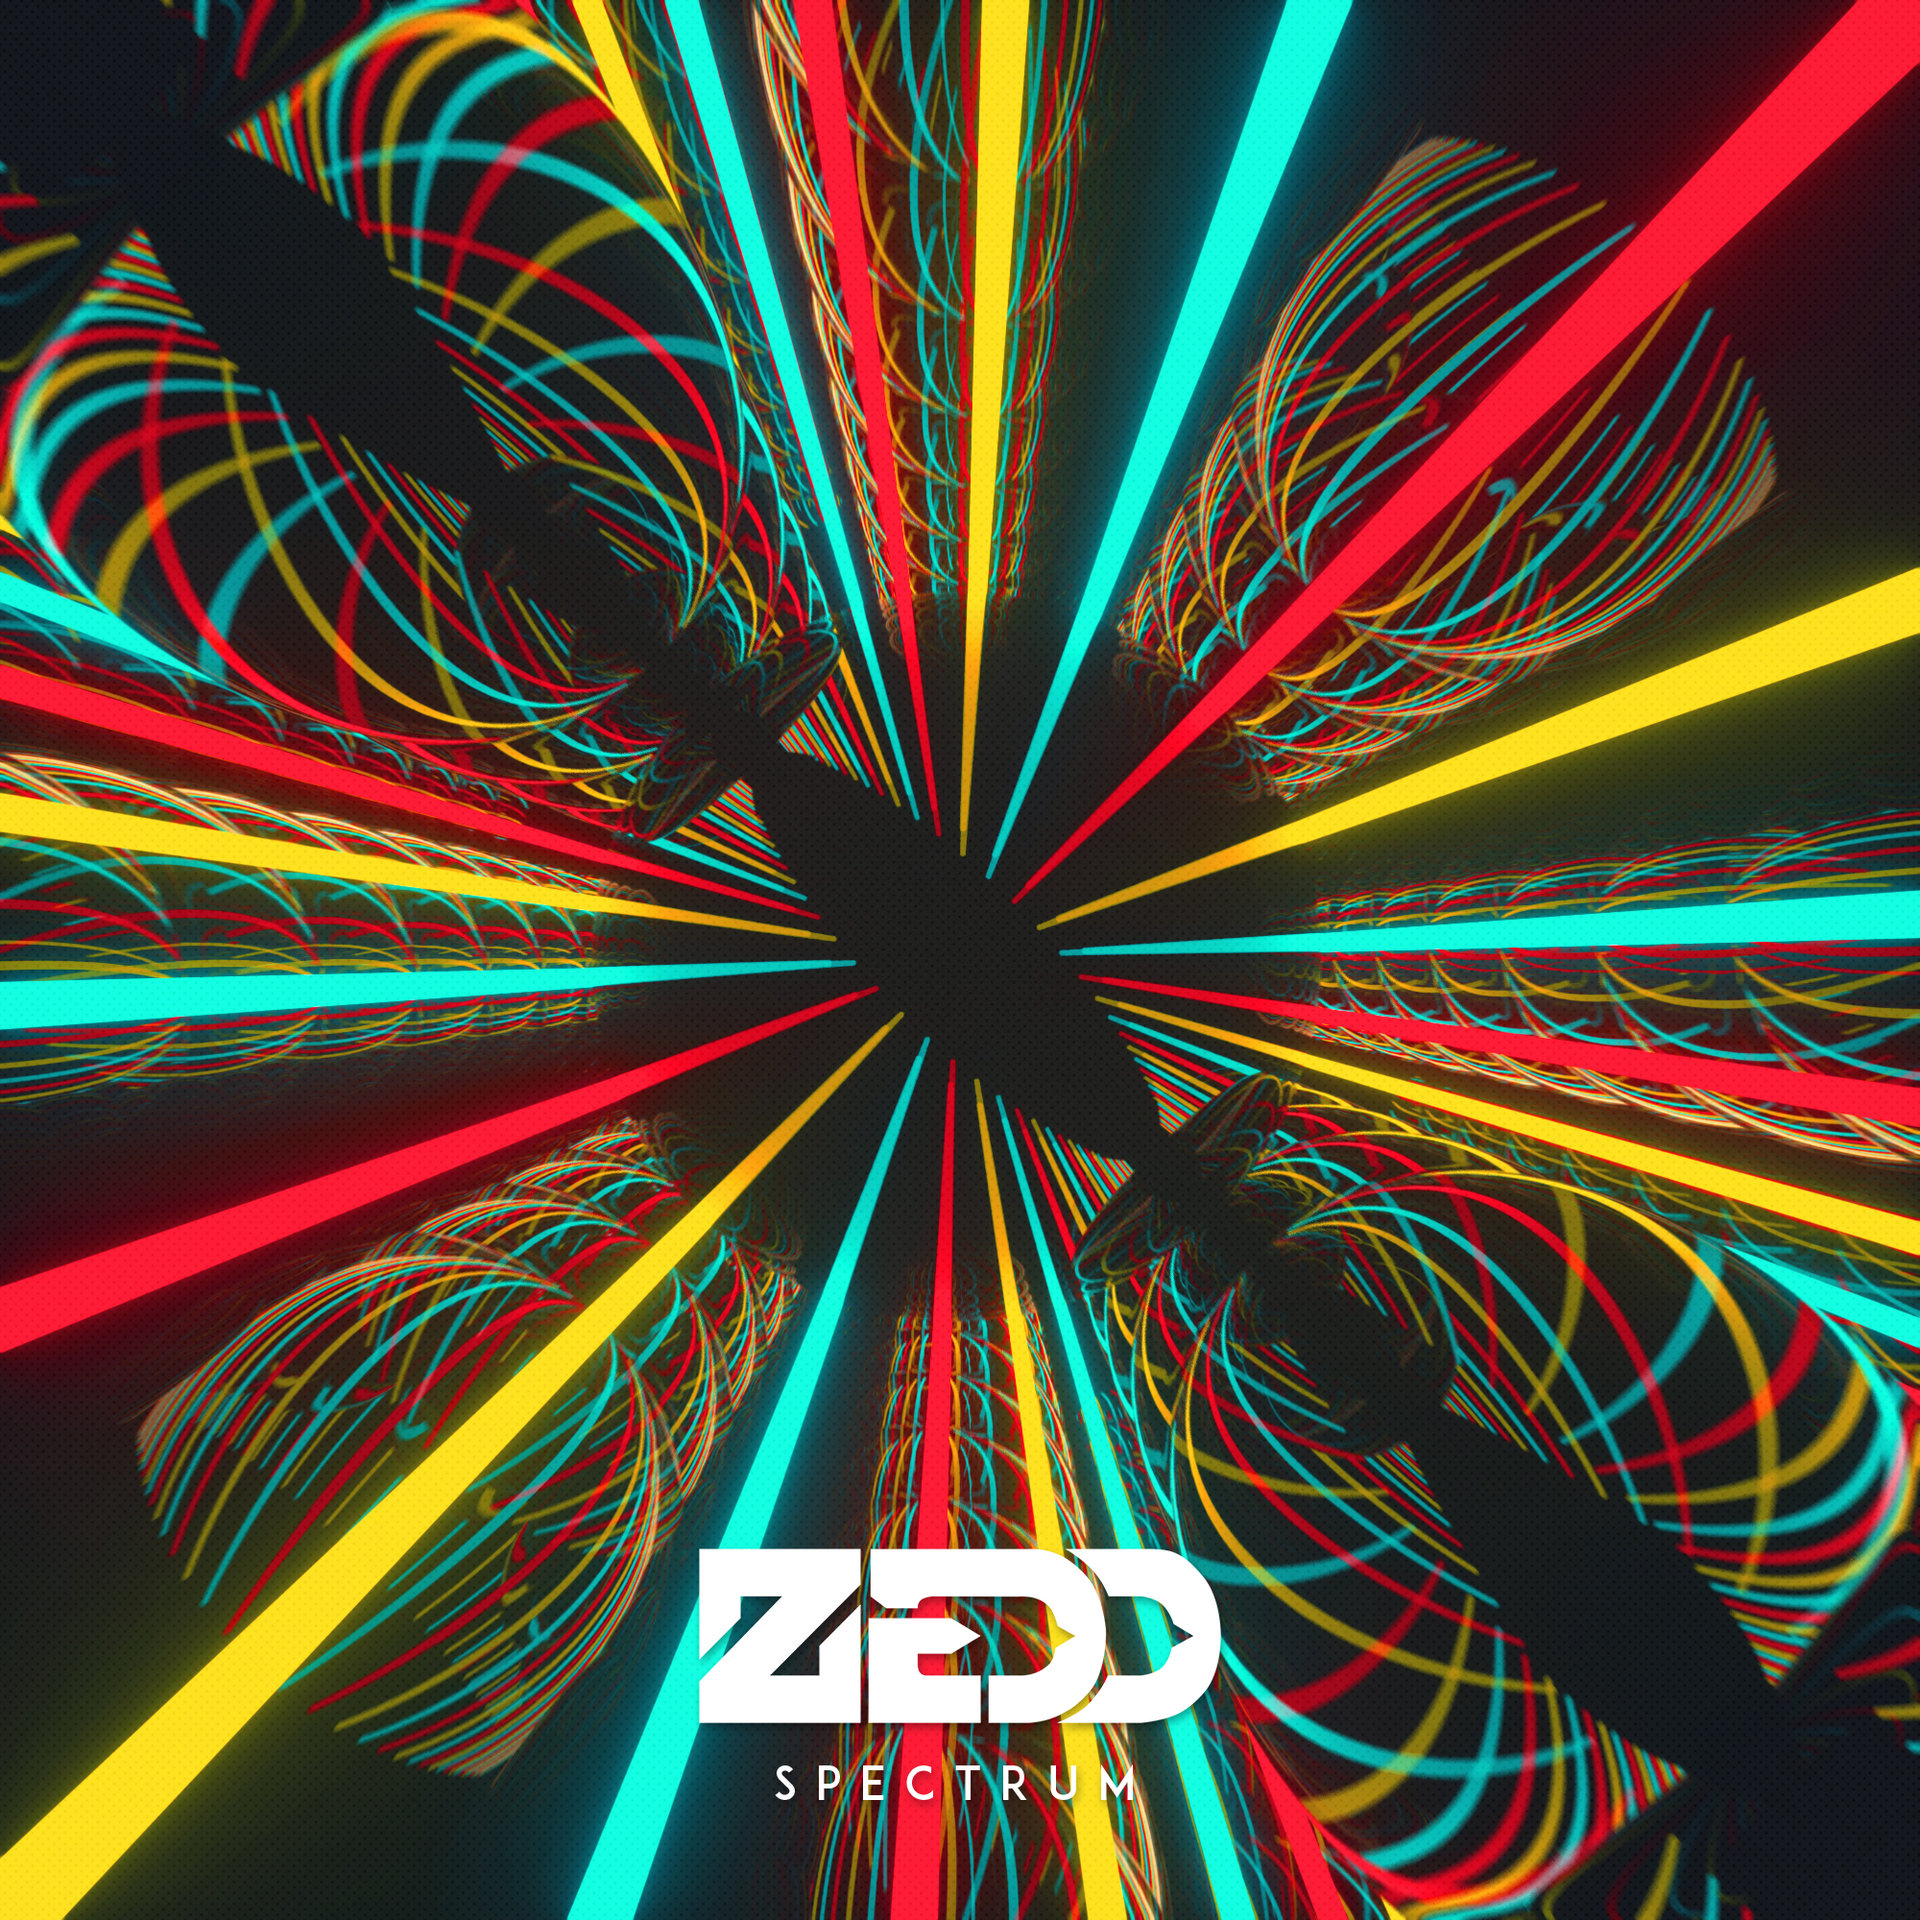 Mark chang zedd cover3